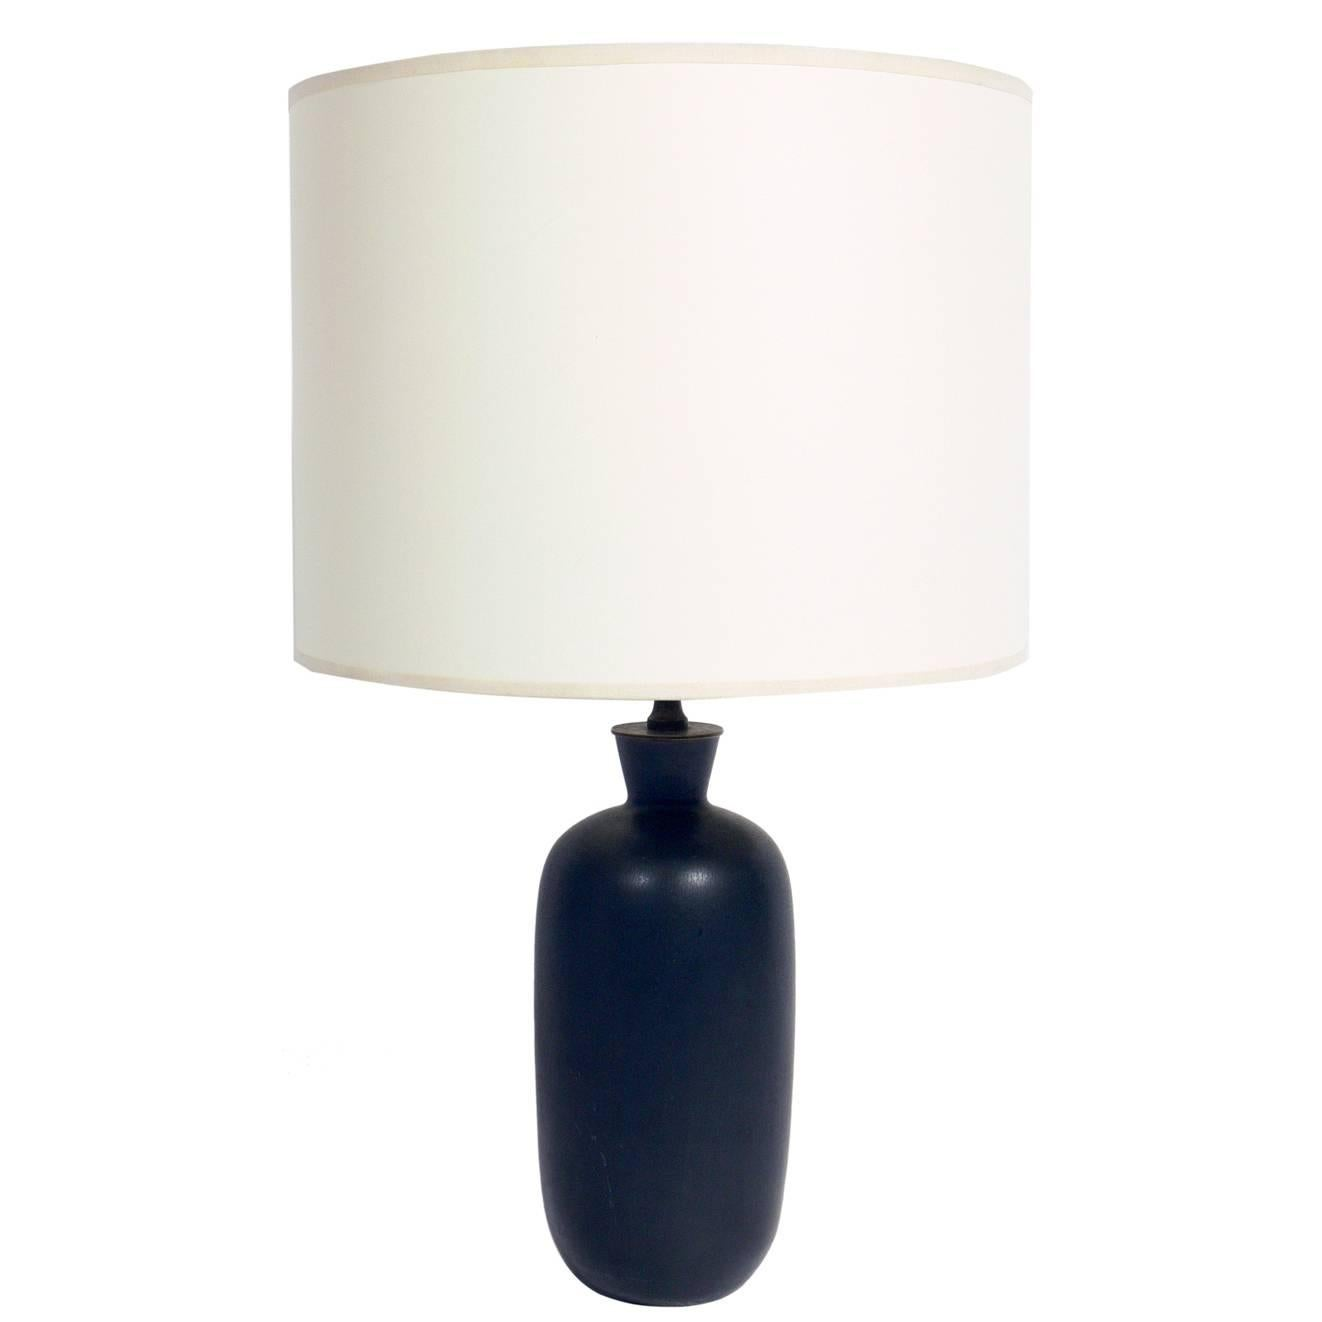 Scandinavian Modern Ceramic Lamp by Carl Harry Stalhane